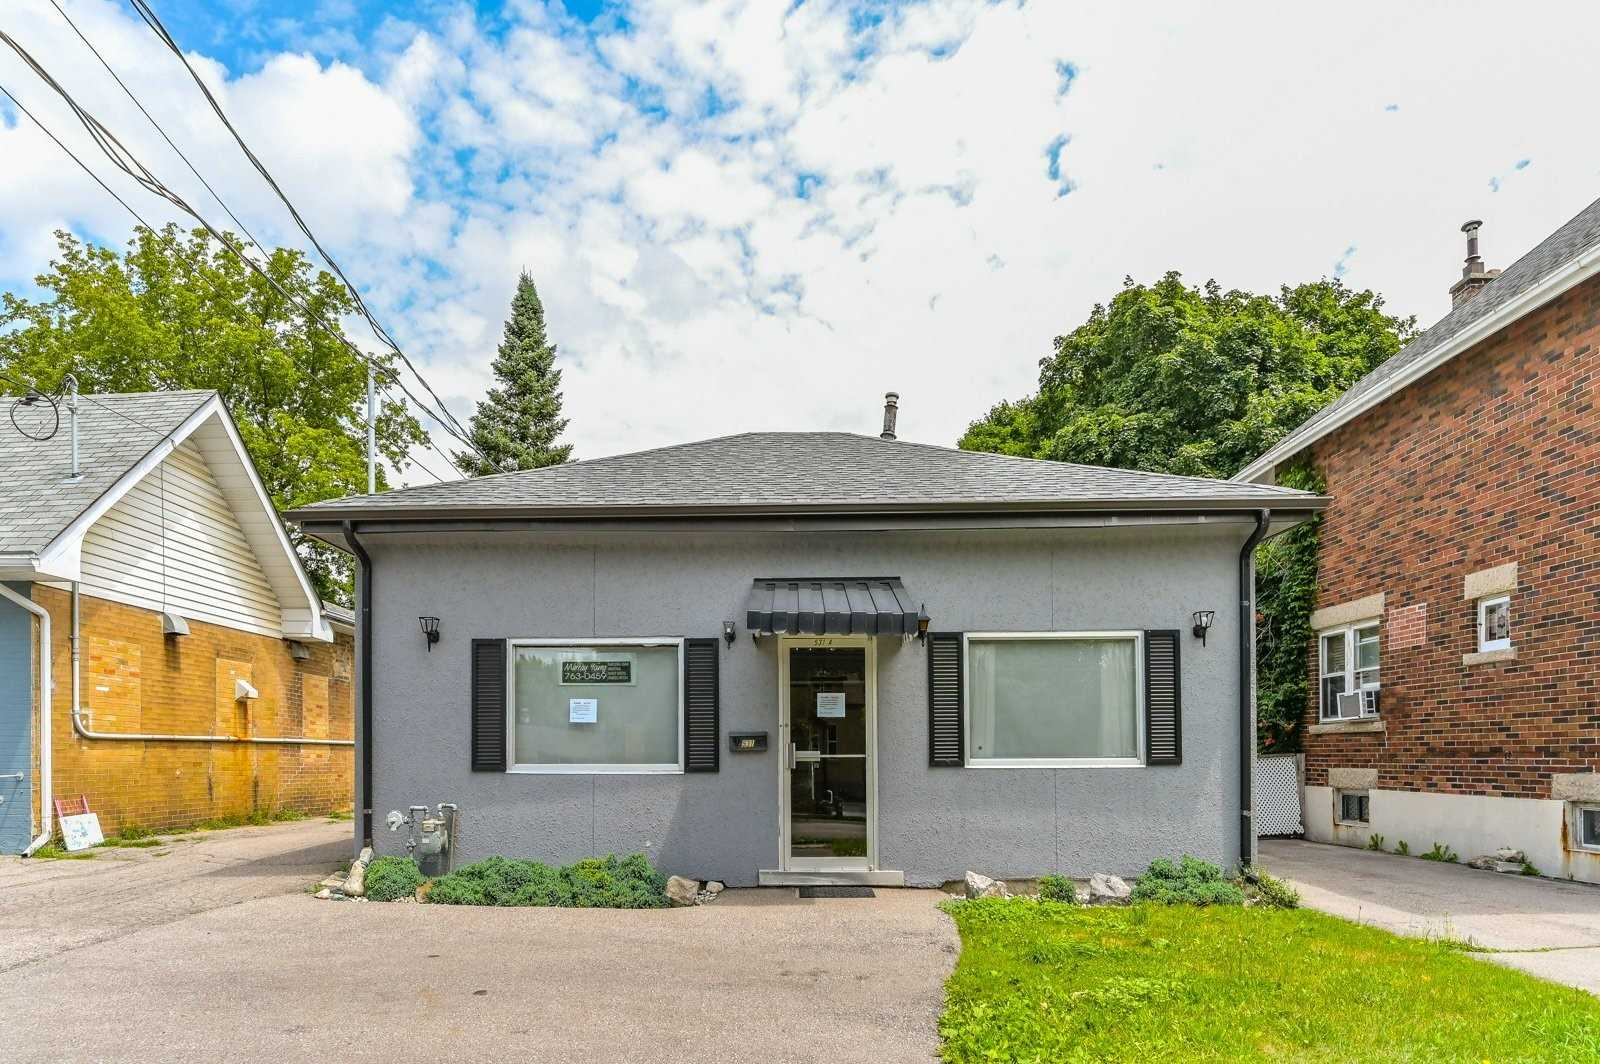 This Is A Unique Property, Central Location, Great Office Space With Additional Income Potential!! Two Cozy Bedroom Apartment. Tons Of Storage, Parking And A Huge Shop!!! Possibilities Are Endless. Use For Your Own Business Or Rent Out All Units!! Or Turn Back To A Single Family Home. Located Beside Polestar Bakery And Across From The Brand New Service Station. New Roof Dec 2019. Amazing Opportunity Not To Be Missed!!!